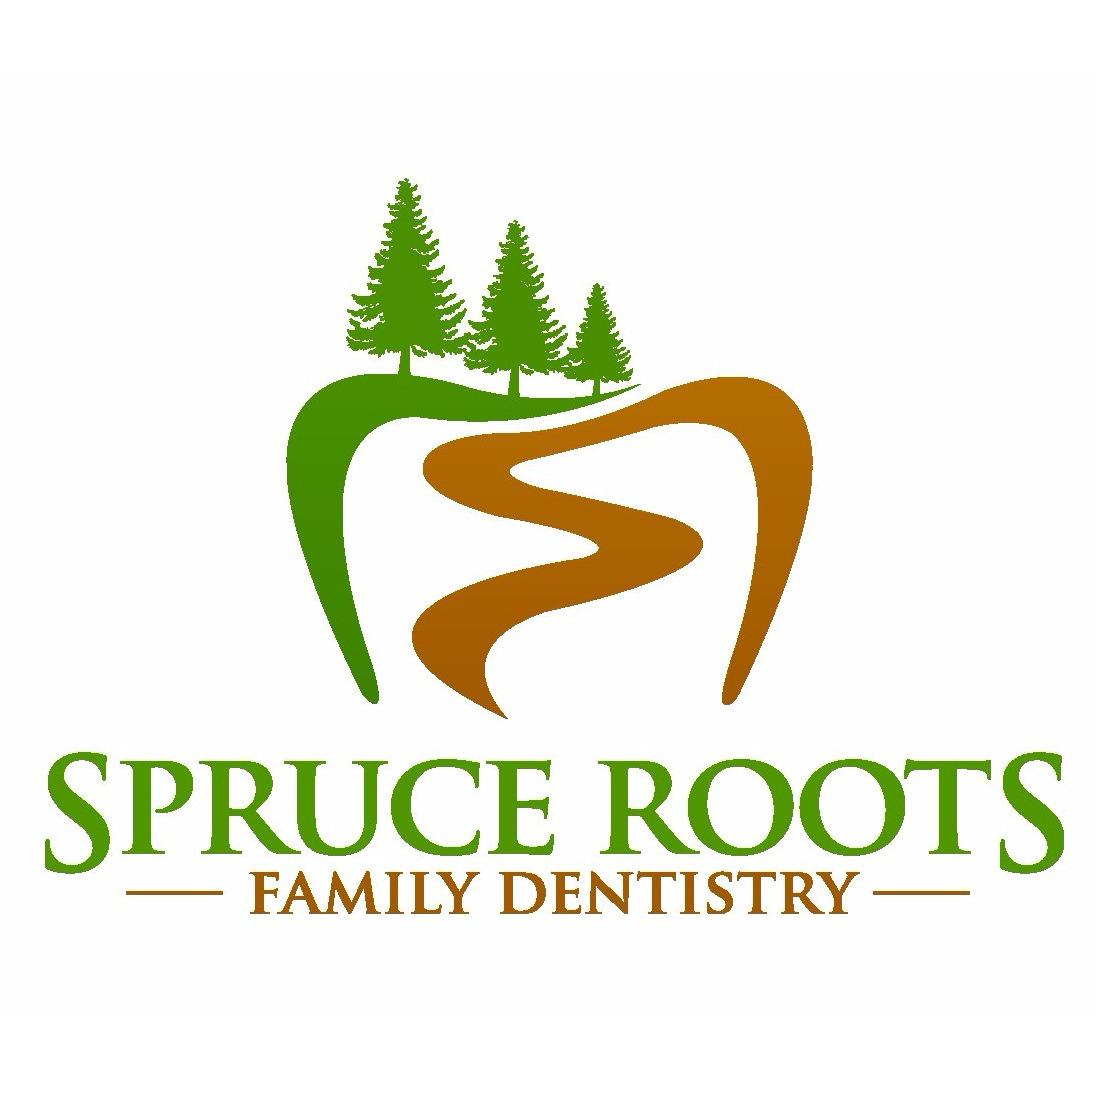 Spruce Roots Family Dentistry